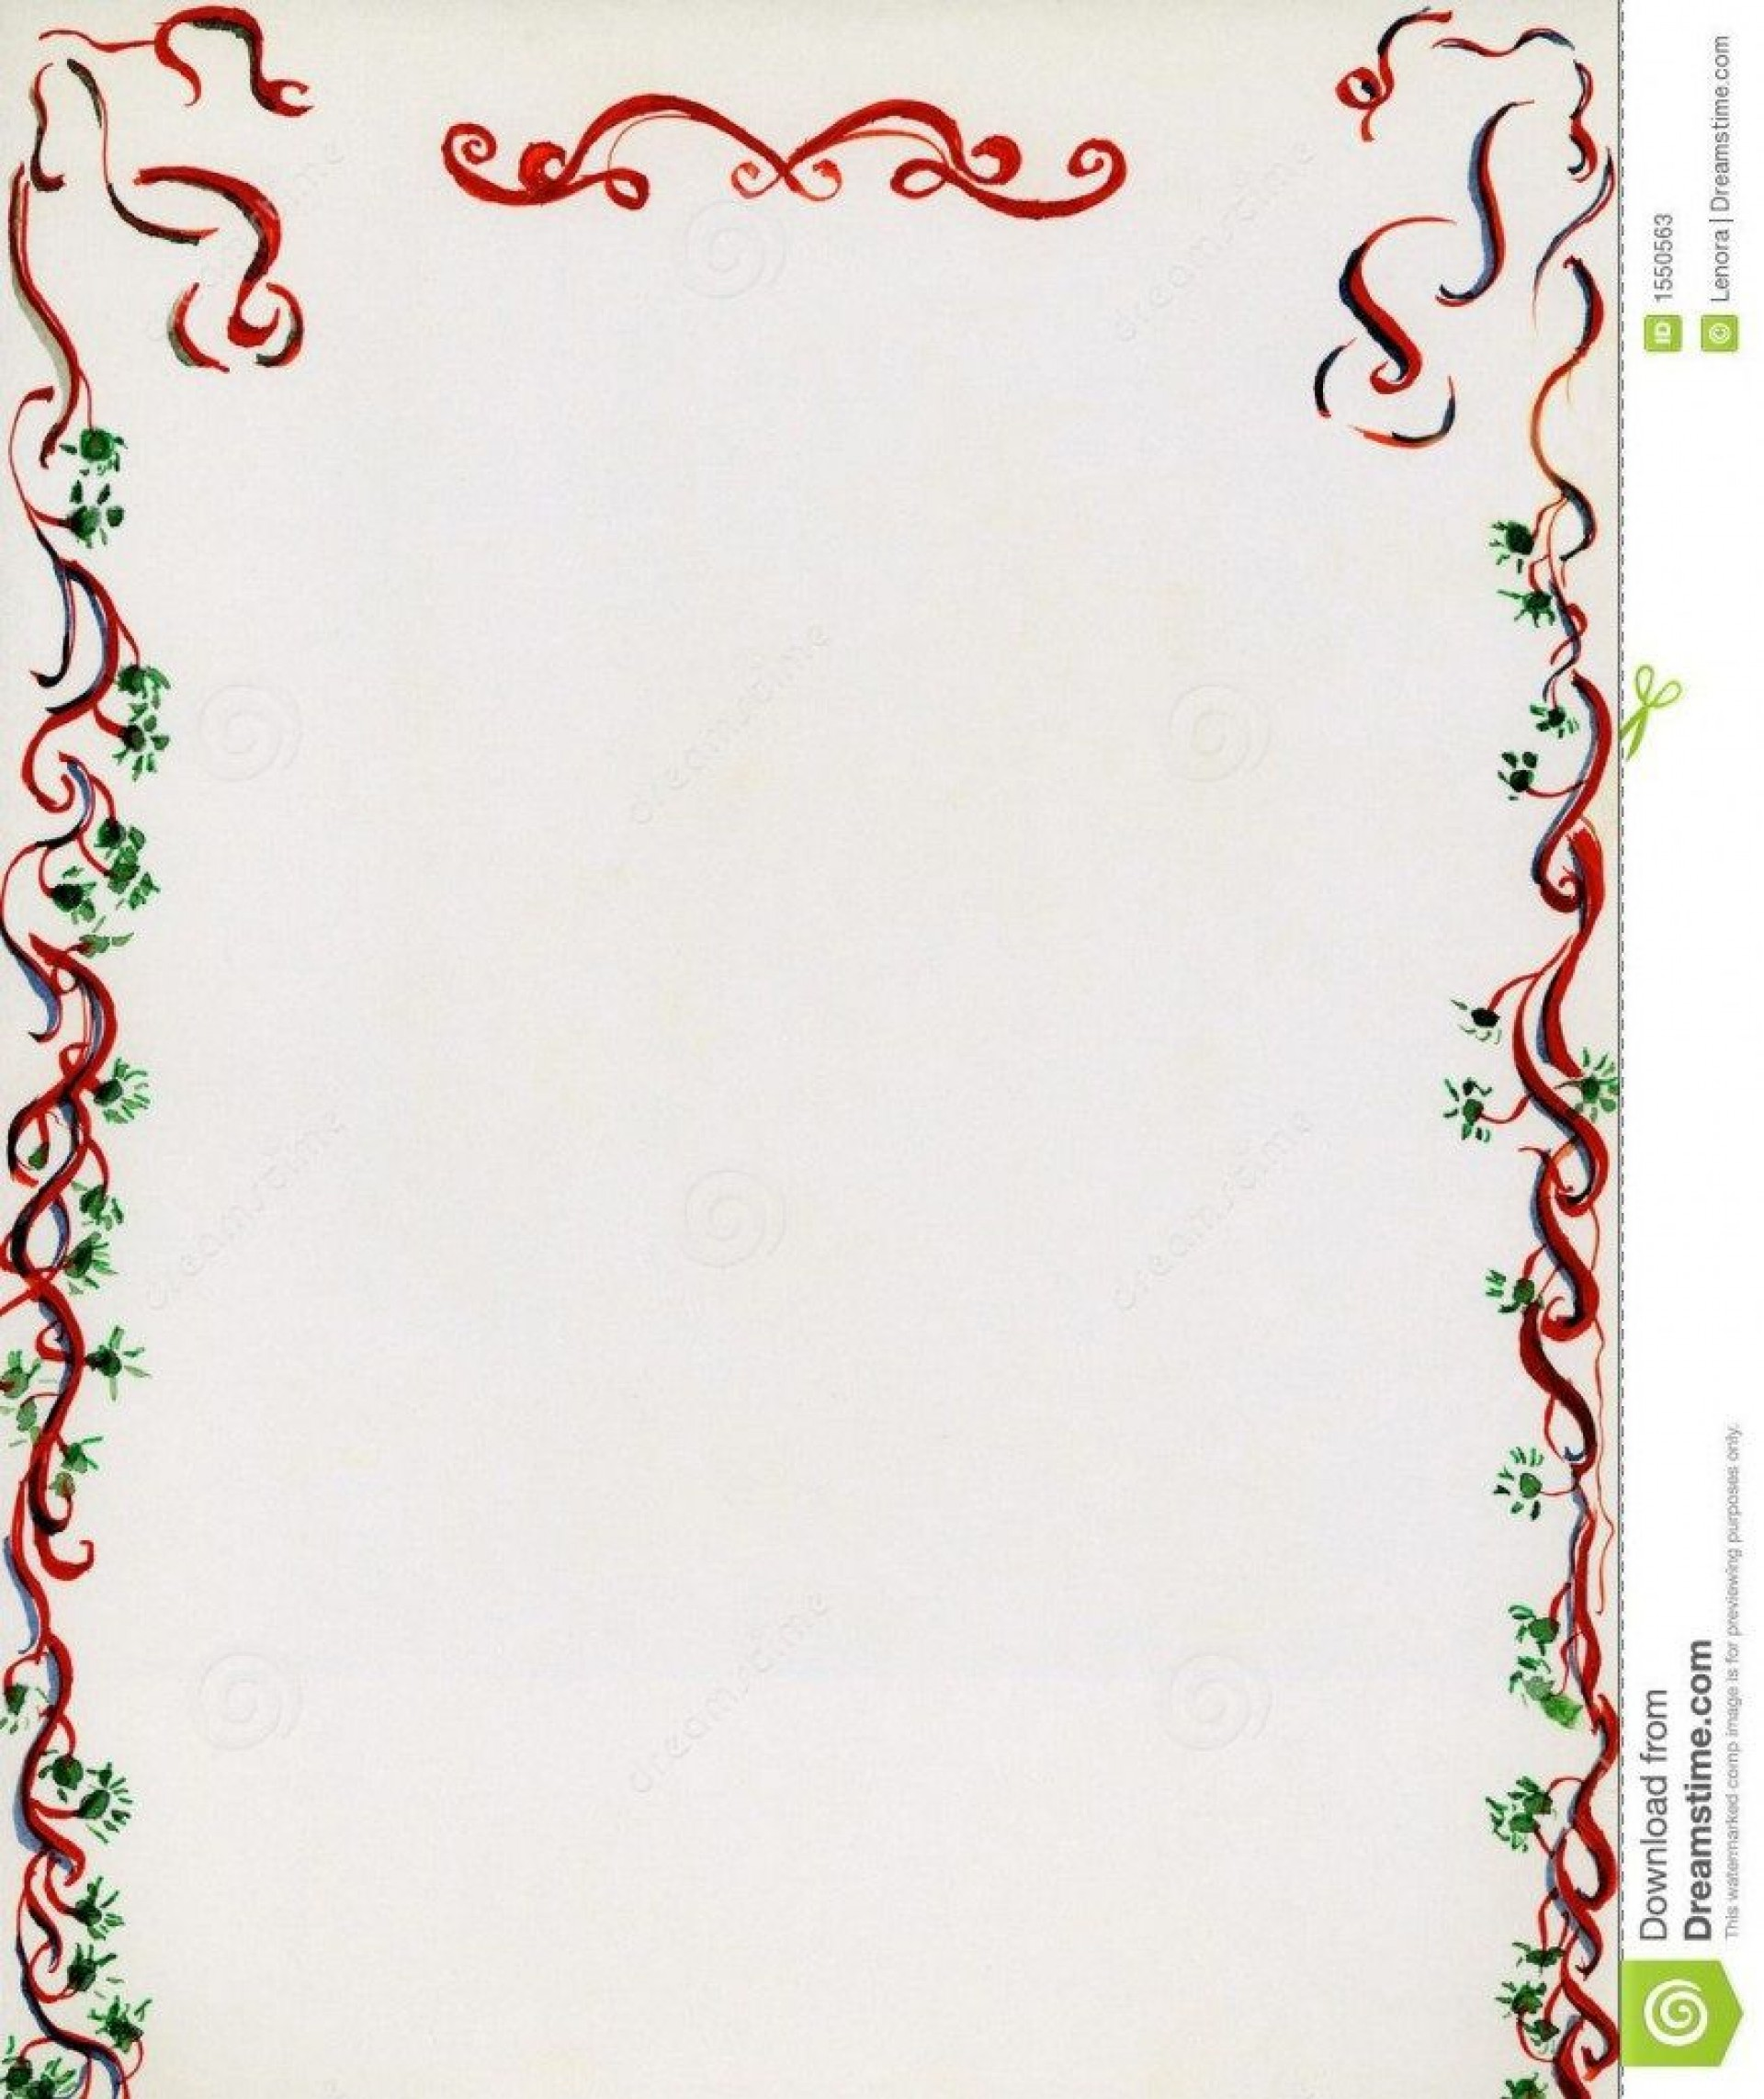 005 Unique Christma Stationery Template Word Free Highest Clarity  Religiou For Downloadable1920